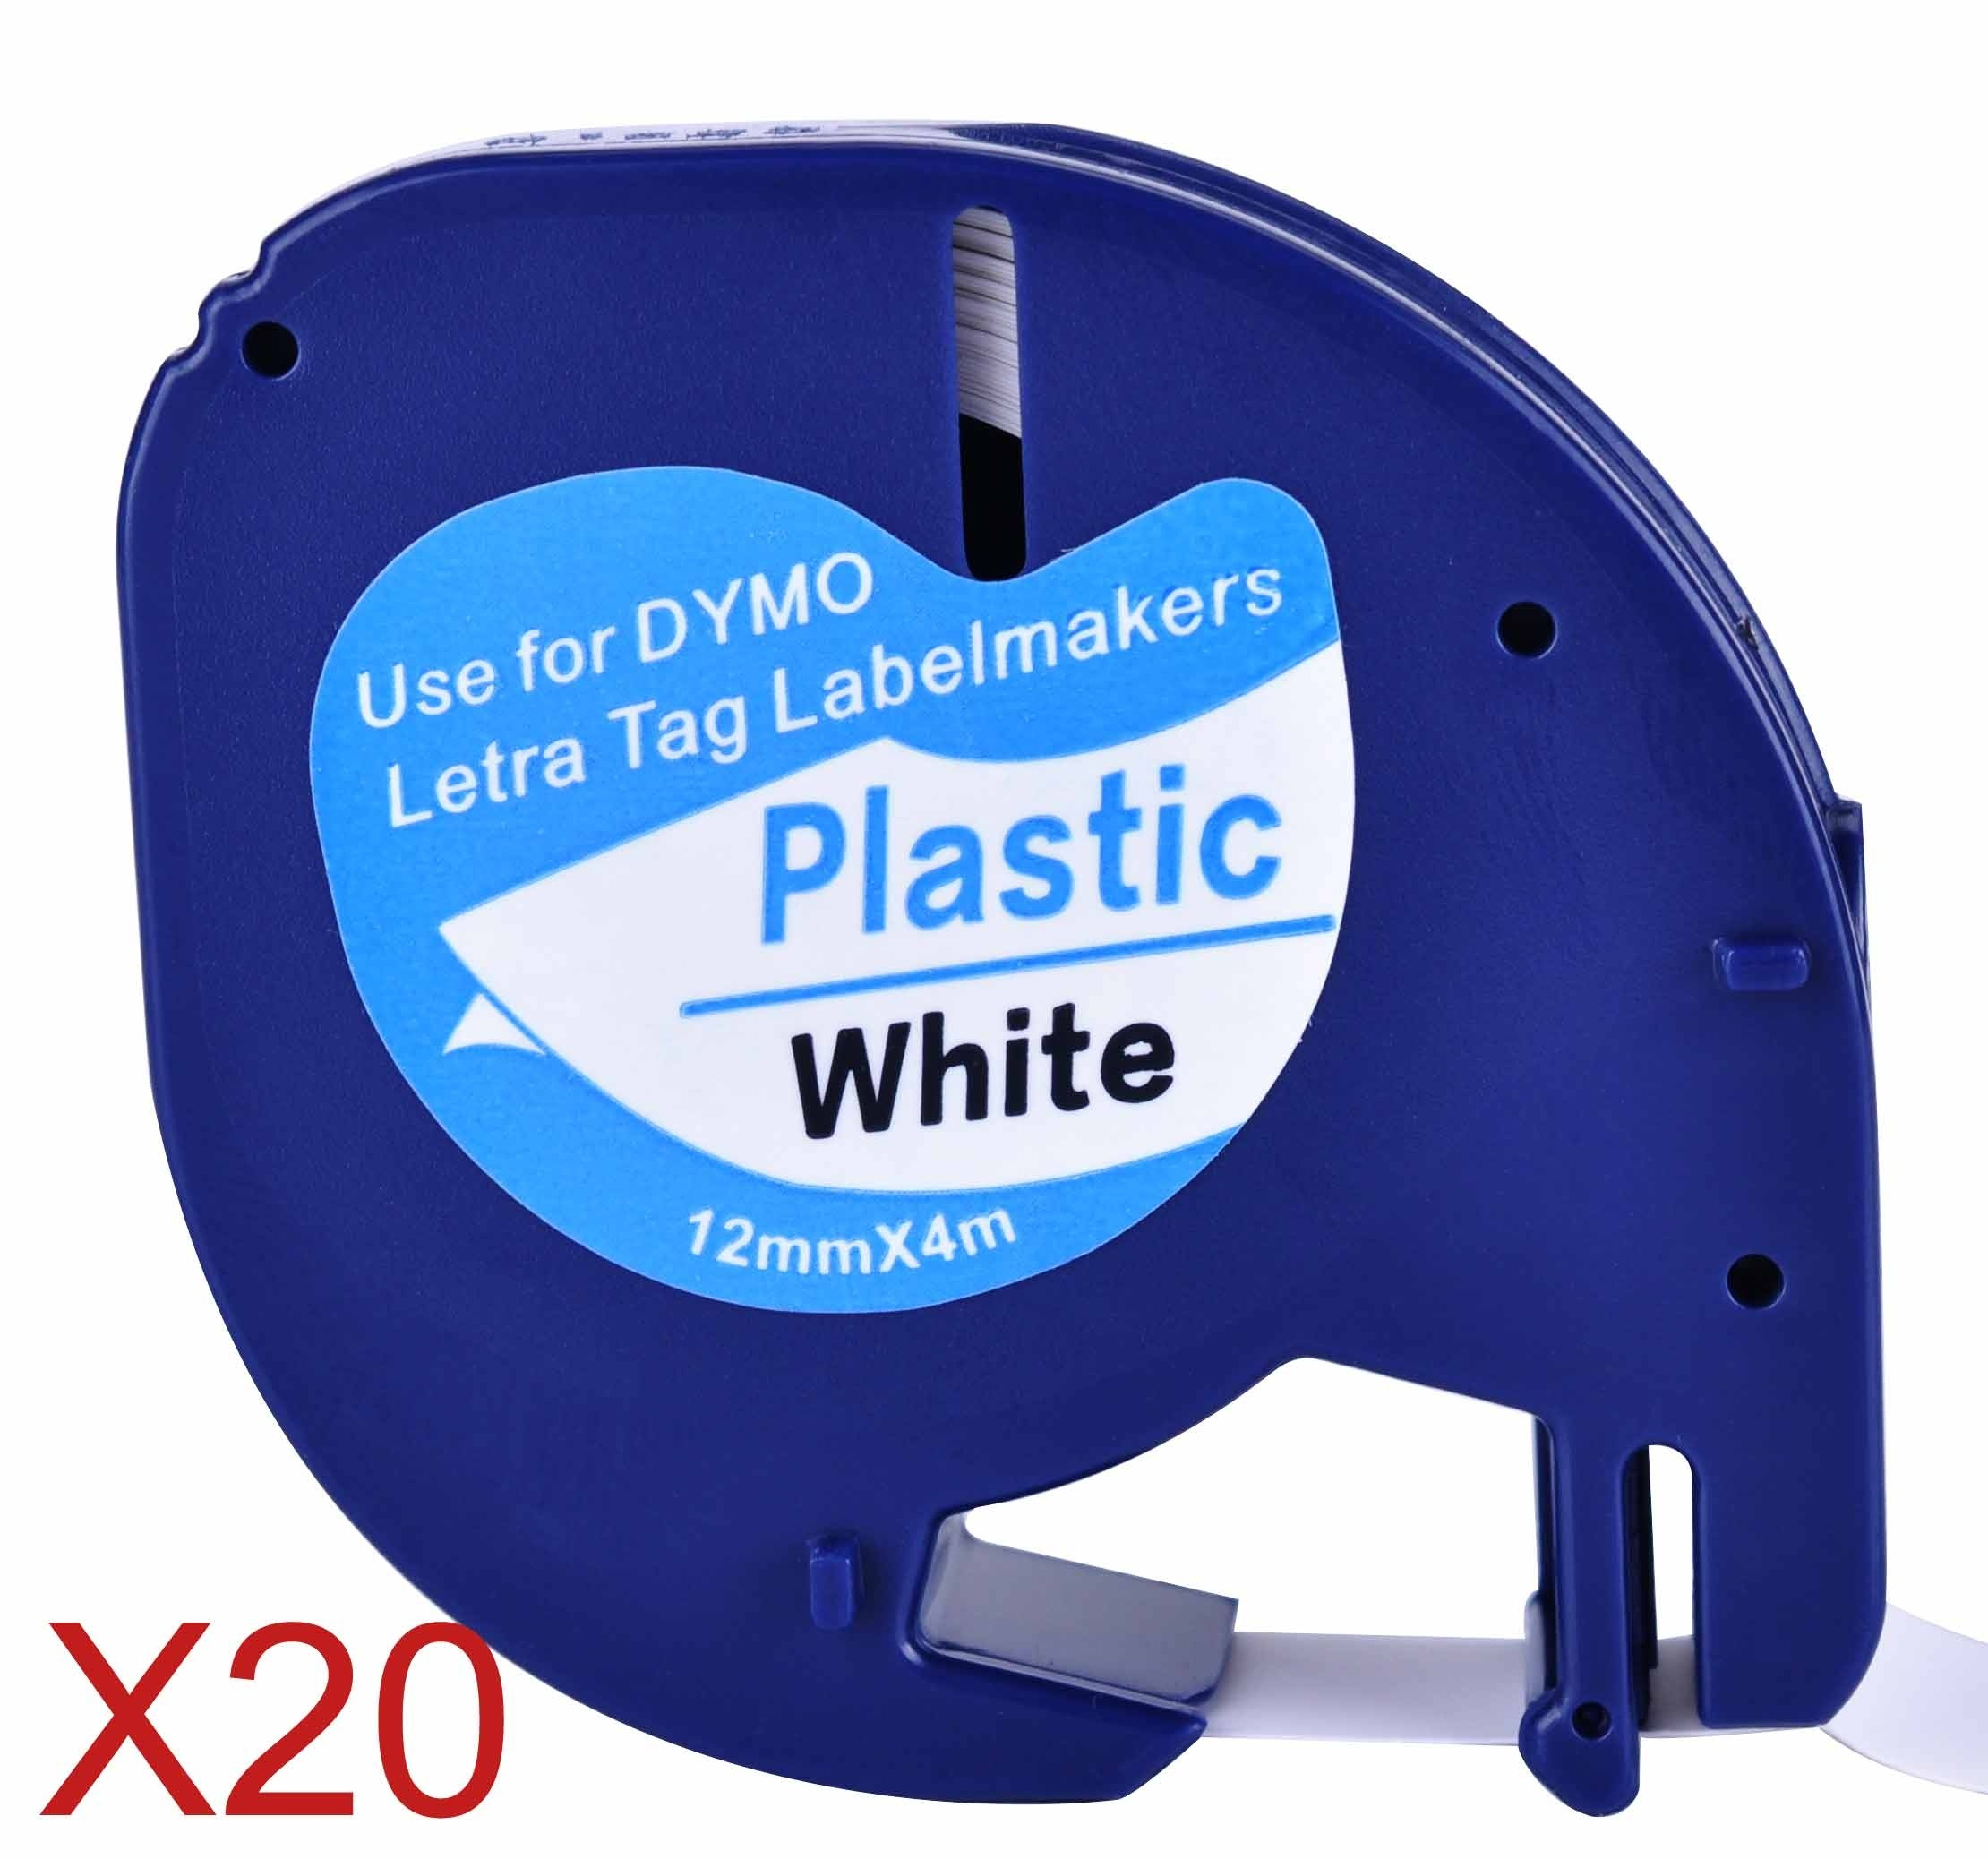 20 Compatible Dymo LetraTag 91201 Black On White (12mm X 4m) Plastic Label Tapes For LT-100H, LT-100T, LT-110T, QX 50, XR, XM,